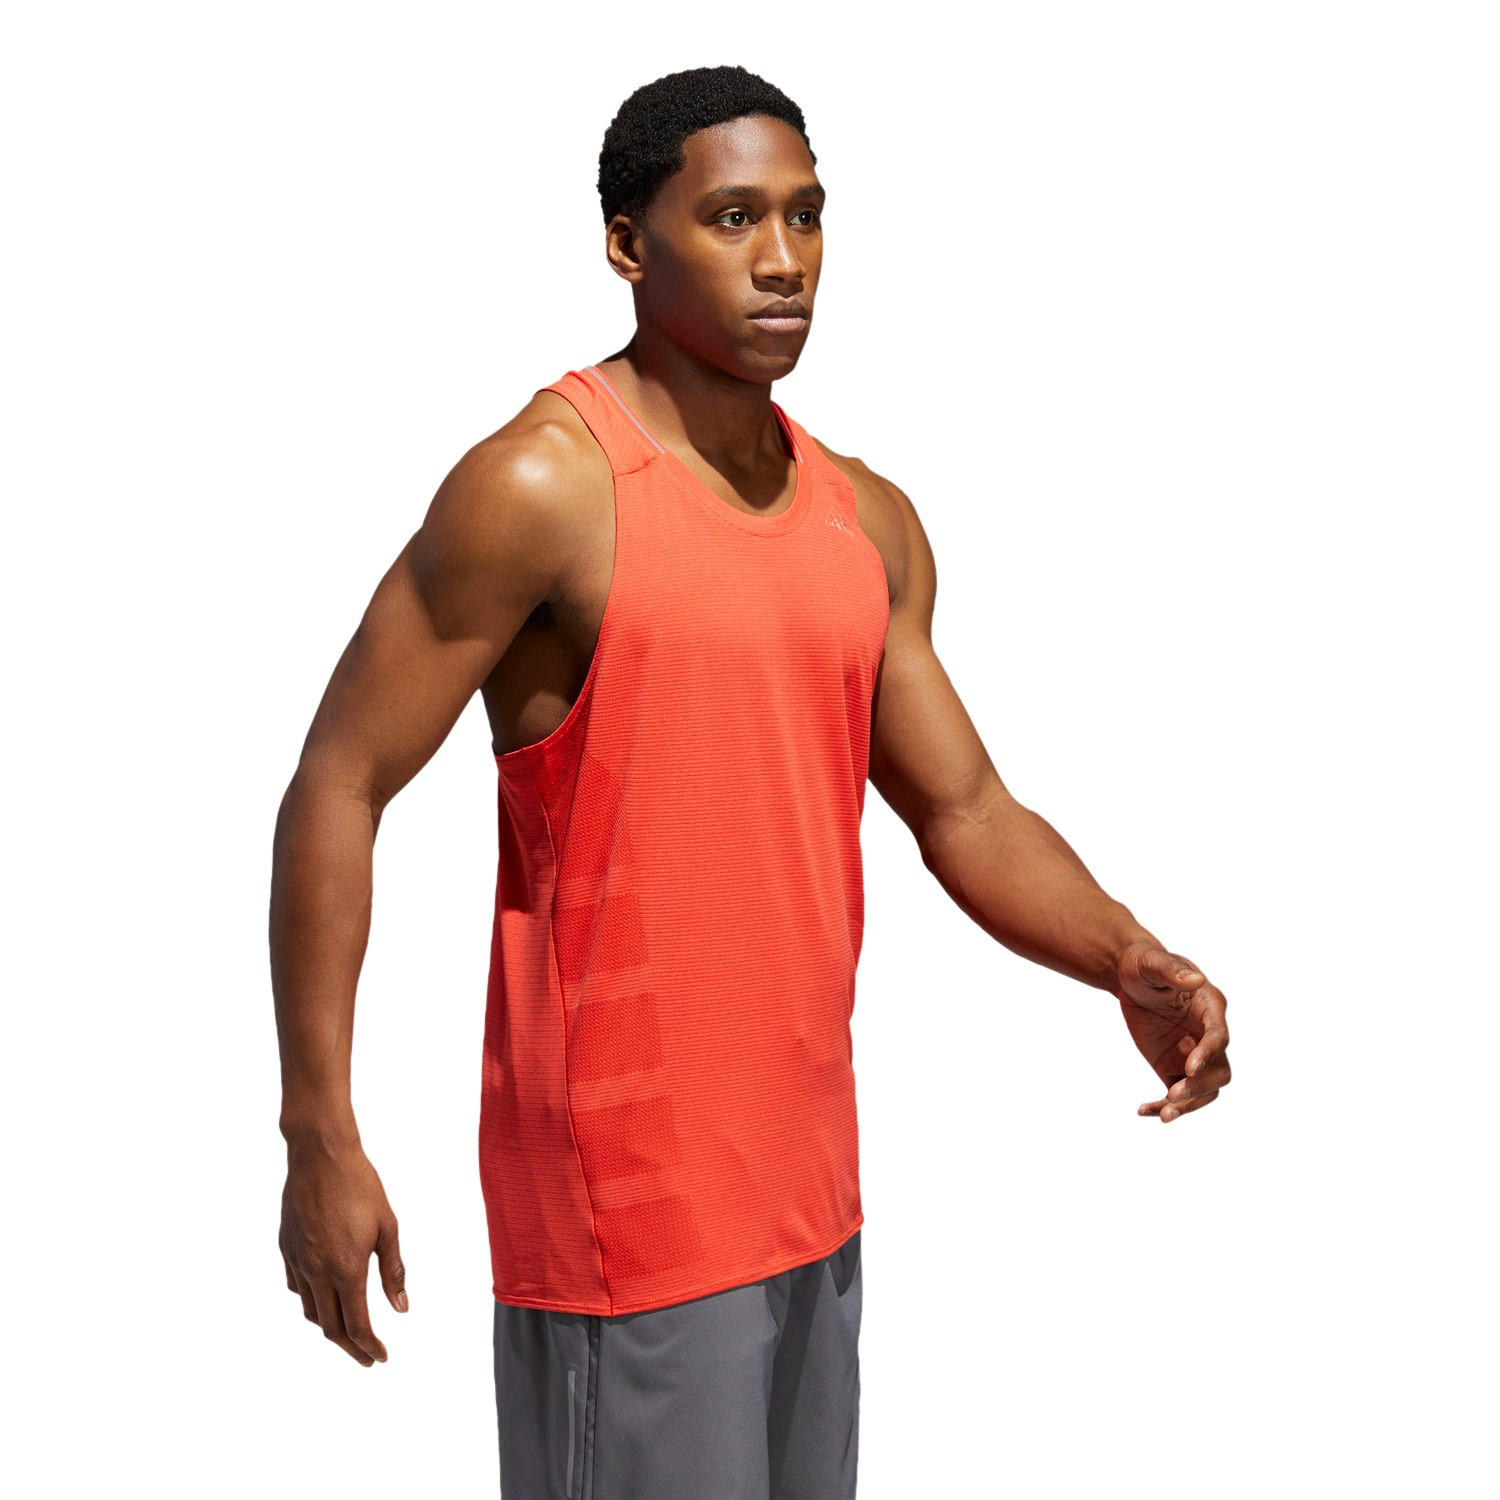 bac62c89a Adidas Supernova Mens Running Singlet - Orange Hi-Res Red